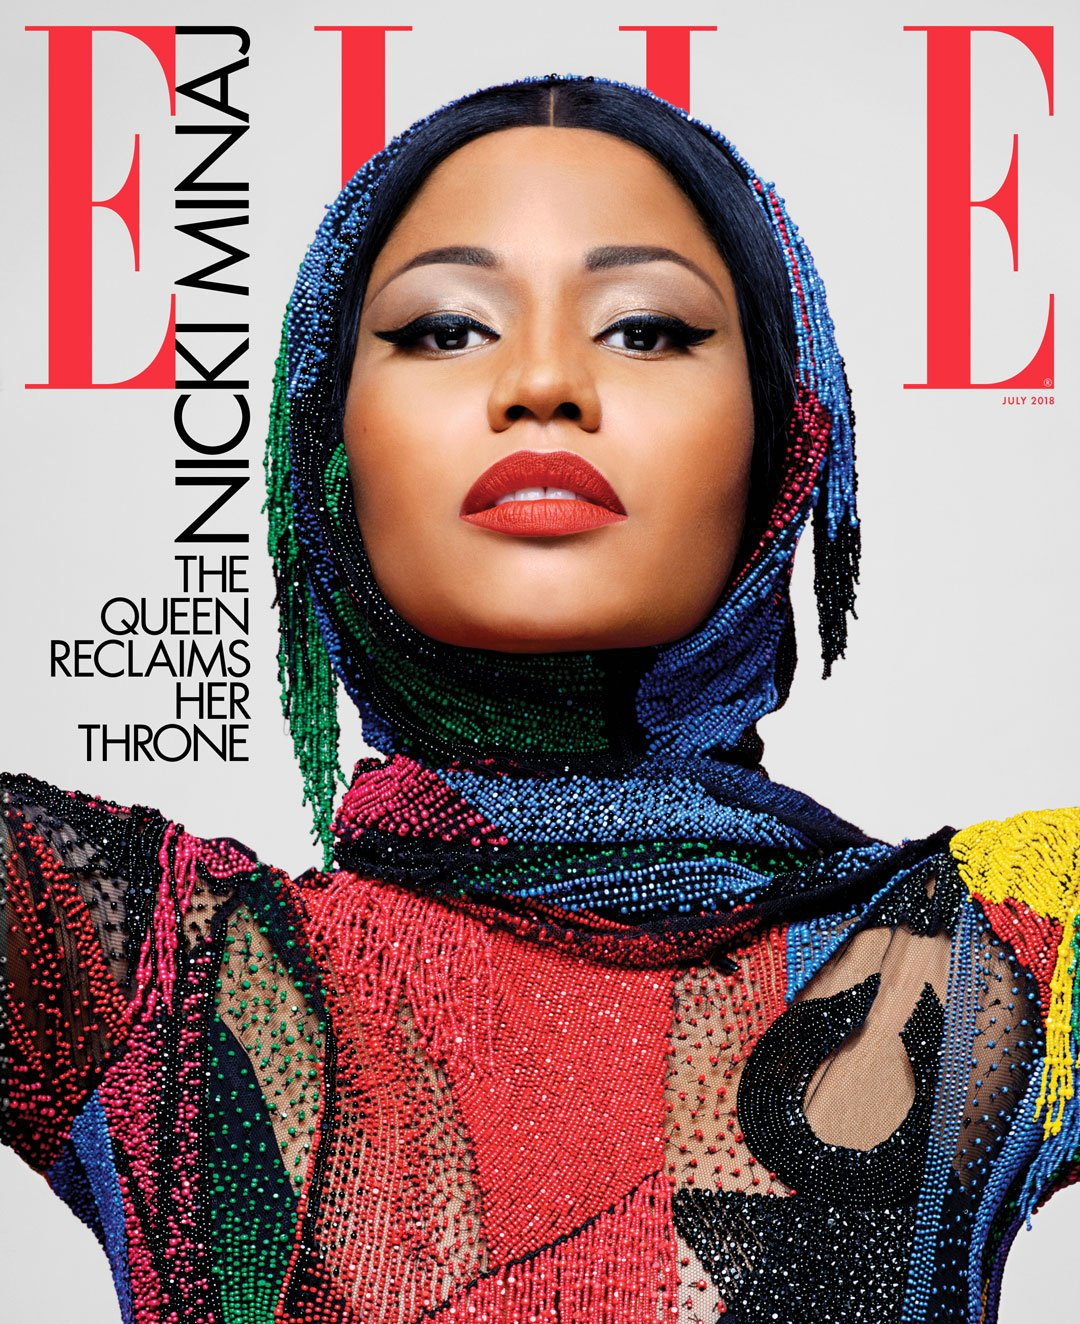 Reloaded twaddle – RT @ELLEmagazine: After a four-year hiatus, the Queen returns. @NICKIMINAJ is ou...